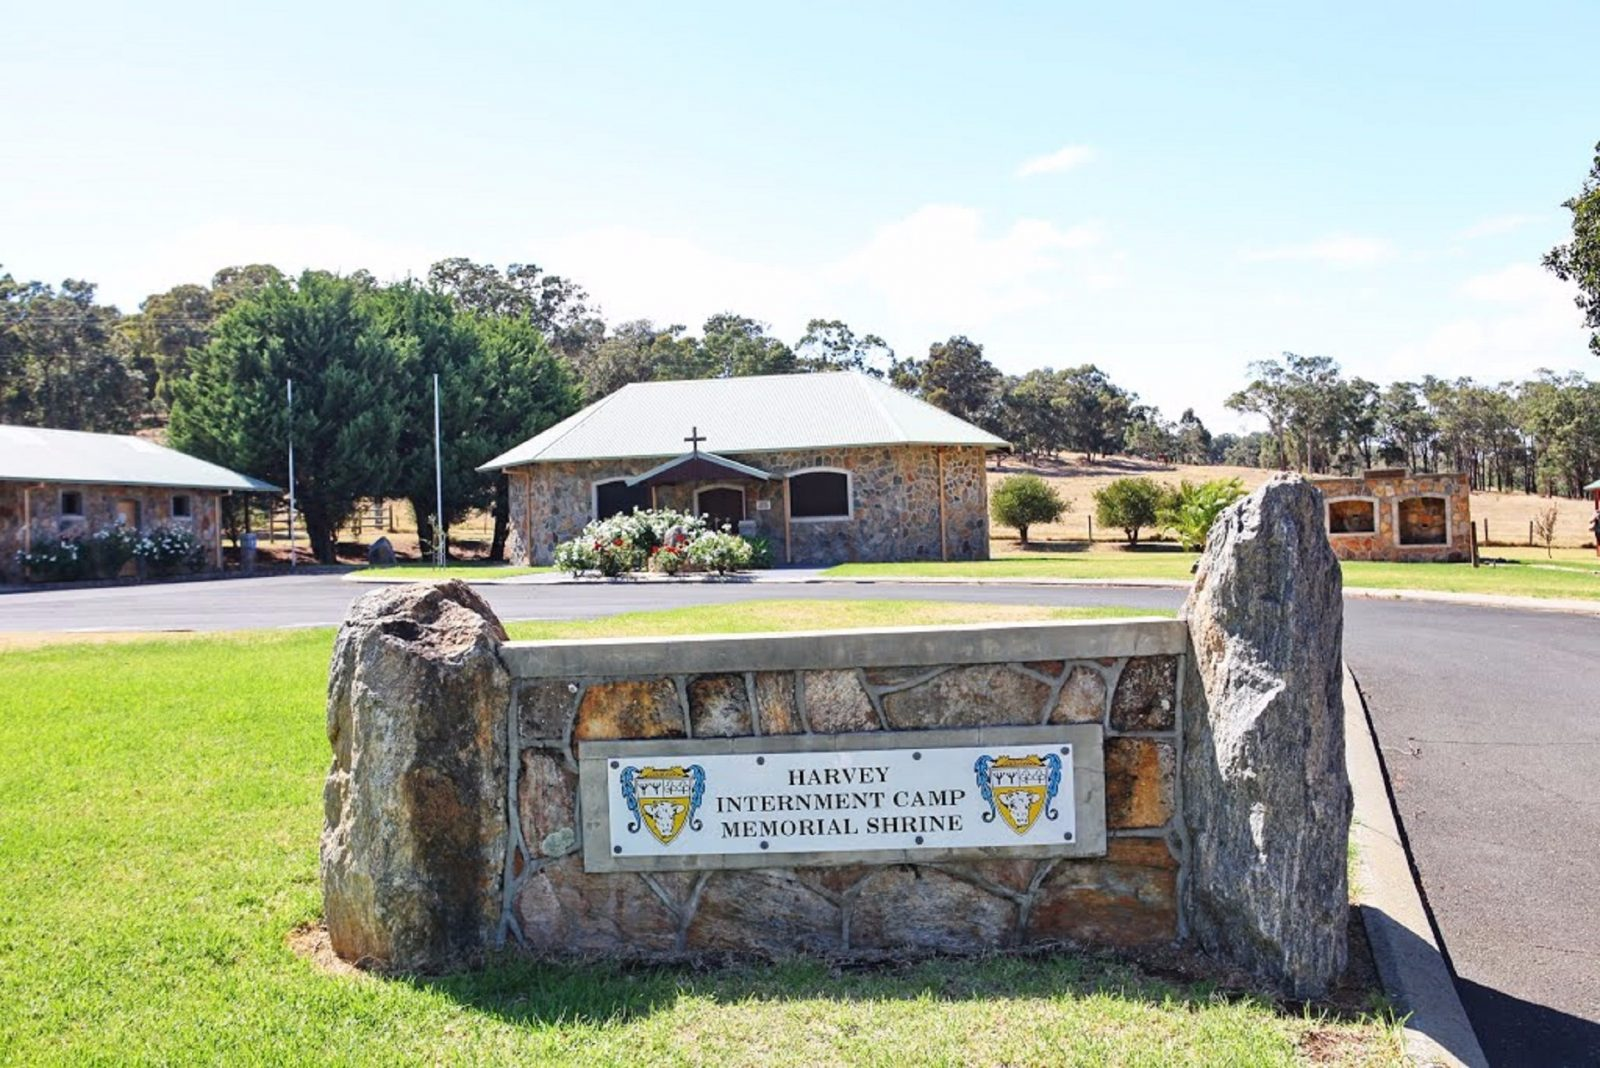 Internment Camp Memorial Shrine, Harvey, Western Australia